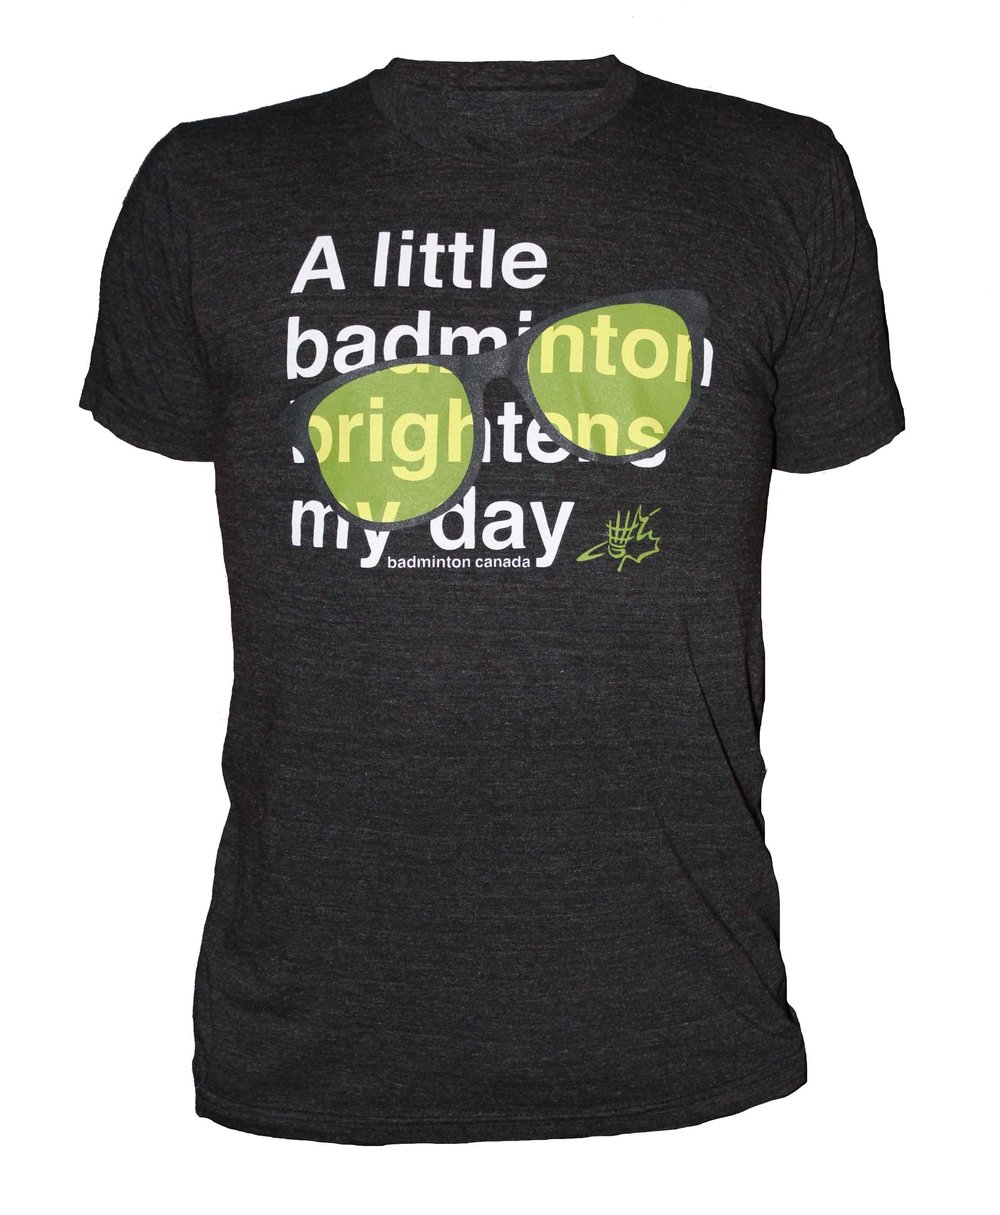 Badminton brightens tee copy.jpg